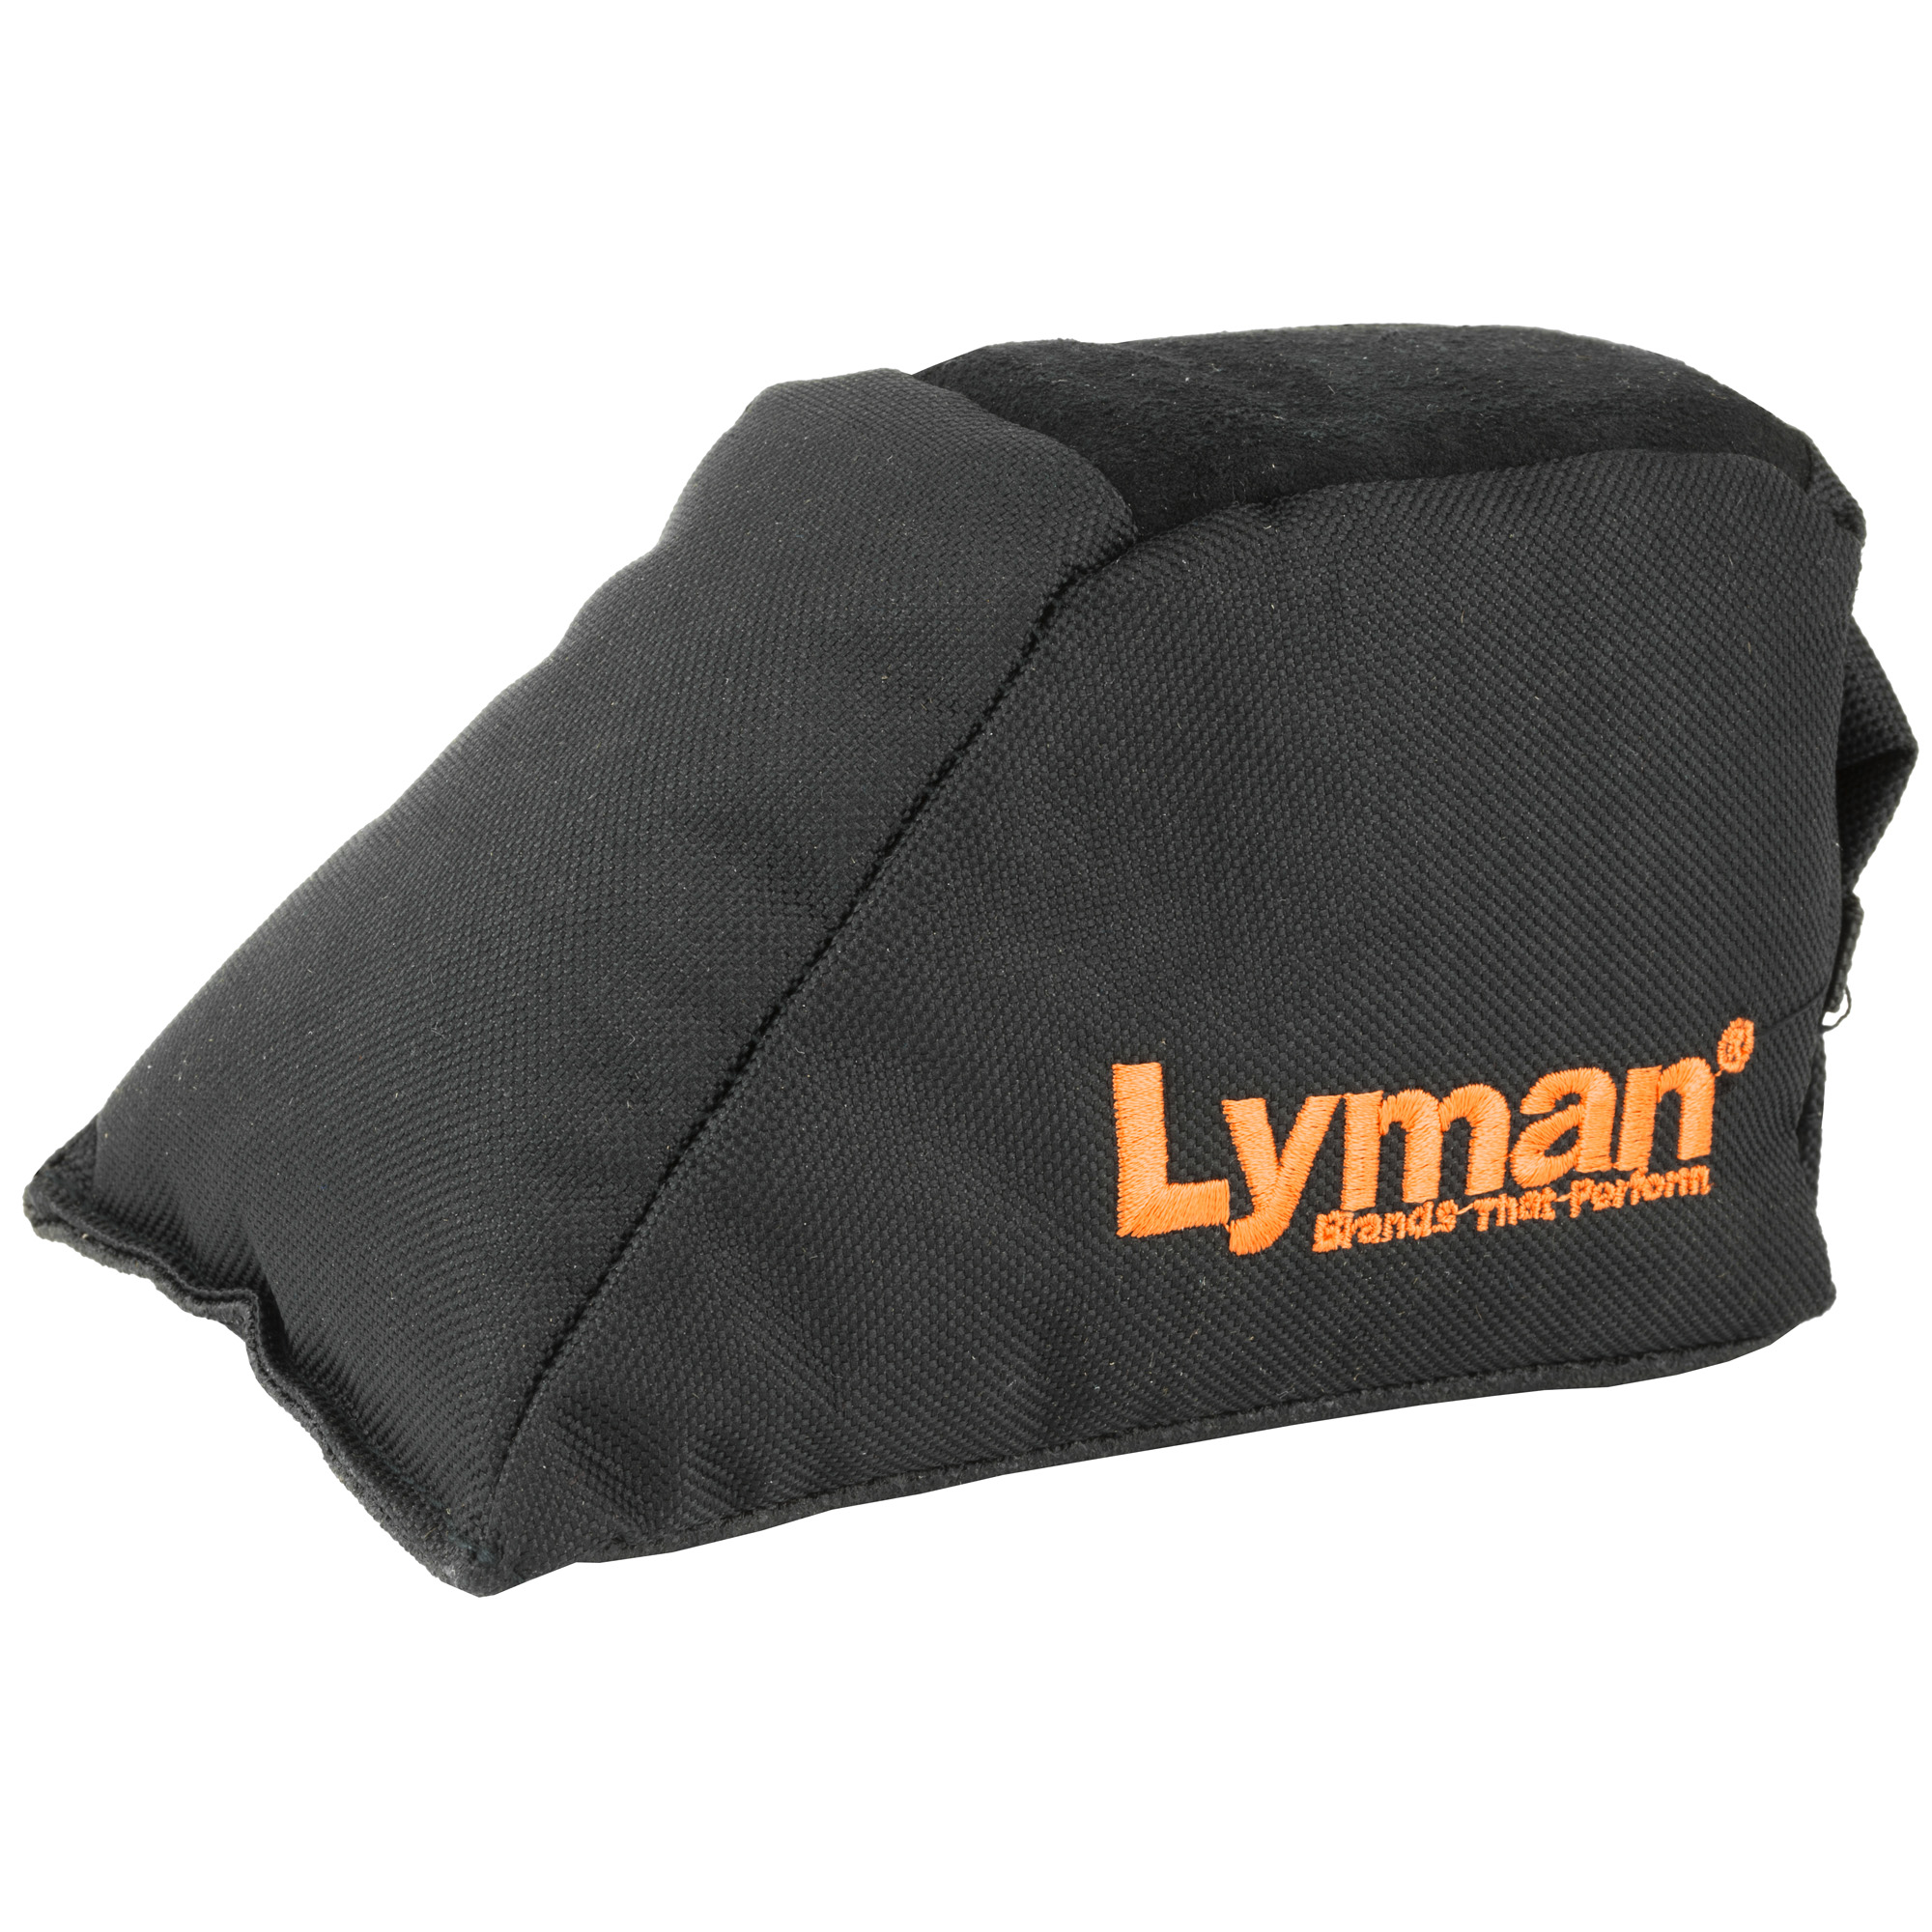 Performance means more than just getting the job done. It means delivering value while advancing technology. Most important it means listening to the needs of shooters. Lyman continues to improve and innovate the tools and reloading supplies used by serious shooters and reloaders.